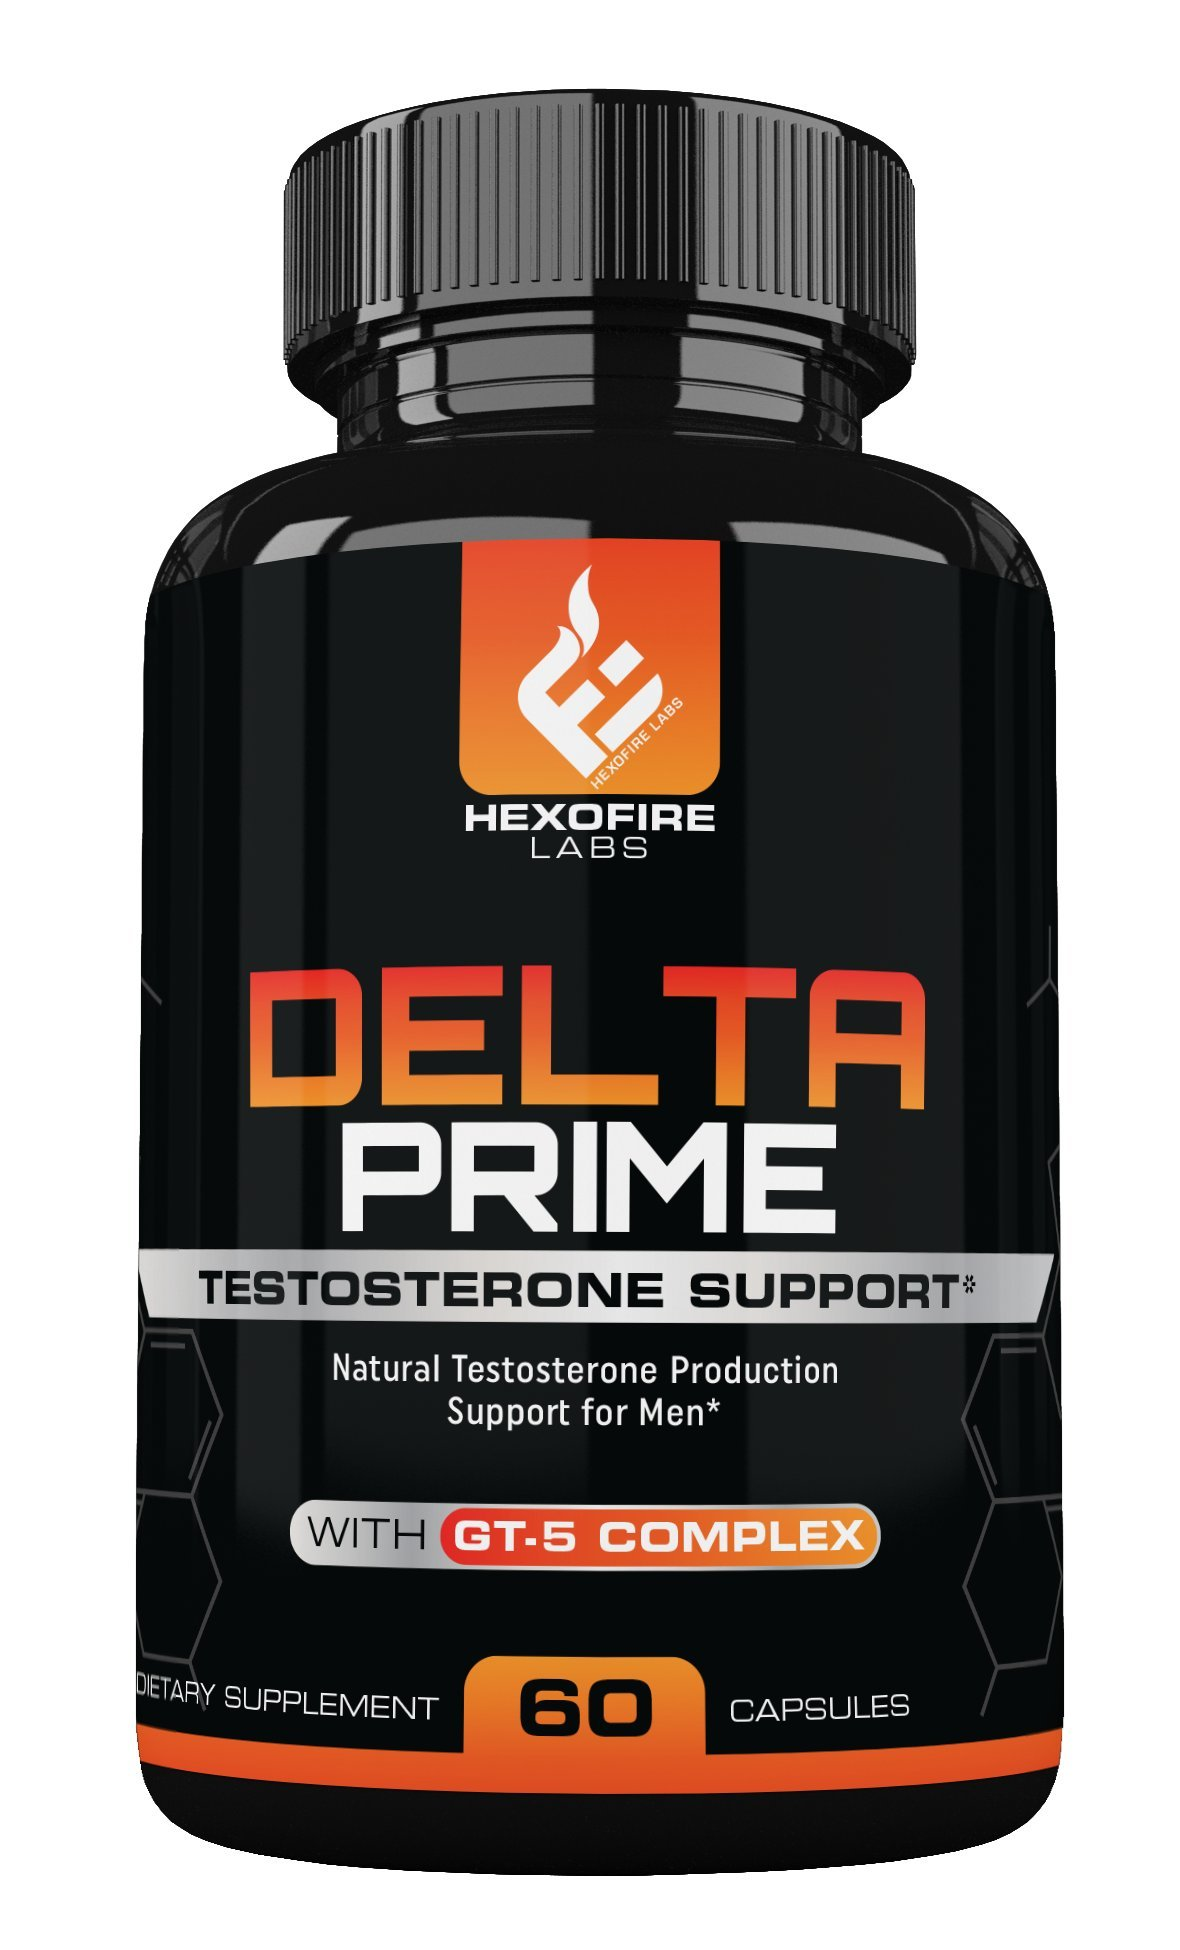 HexoFire Labs Delta Prime, Delta Prime Testosterone Production Support Capsules with Vitamin D Zinc & GT-5 Herbal Blend, 60 Capsules (30 Day Supply) by HexoFire Labs (Image #1)